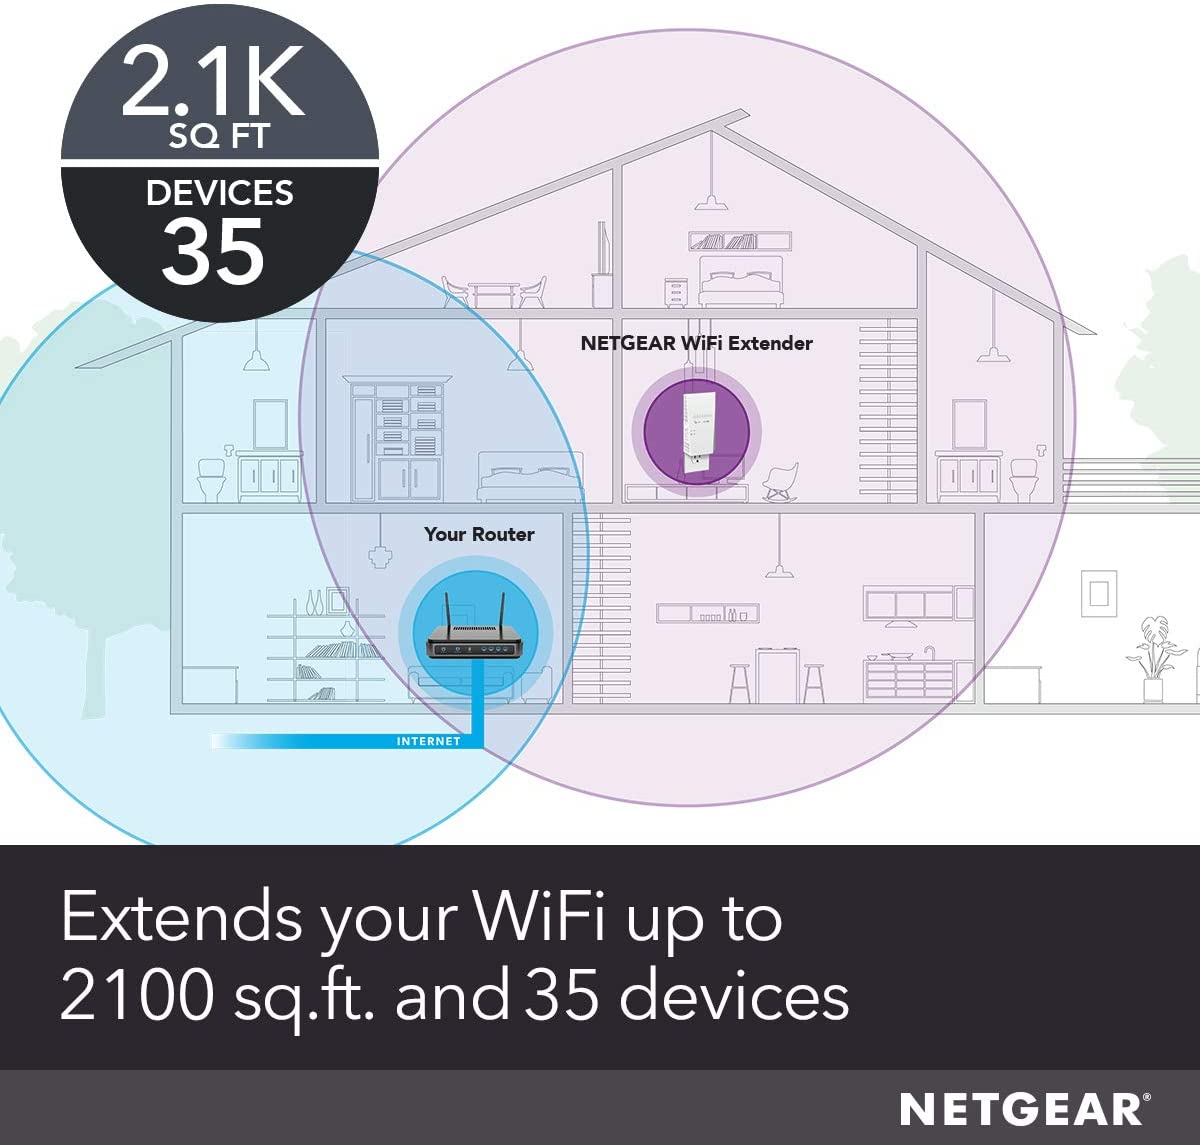 NETGEAR WiFi Mesh Range Extender EX6400 – Coverage up to 2100 sq.ft. and 35 Devices with AC1900 Dual Band Wireless Signal Booster Repeater up to 1900Mbps Speed , Plus Mesh Smart Roaming